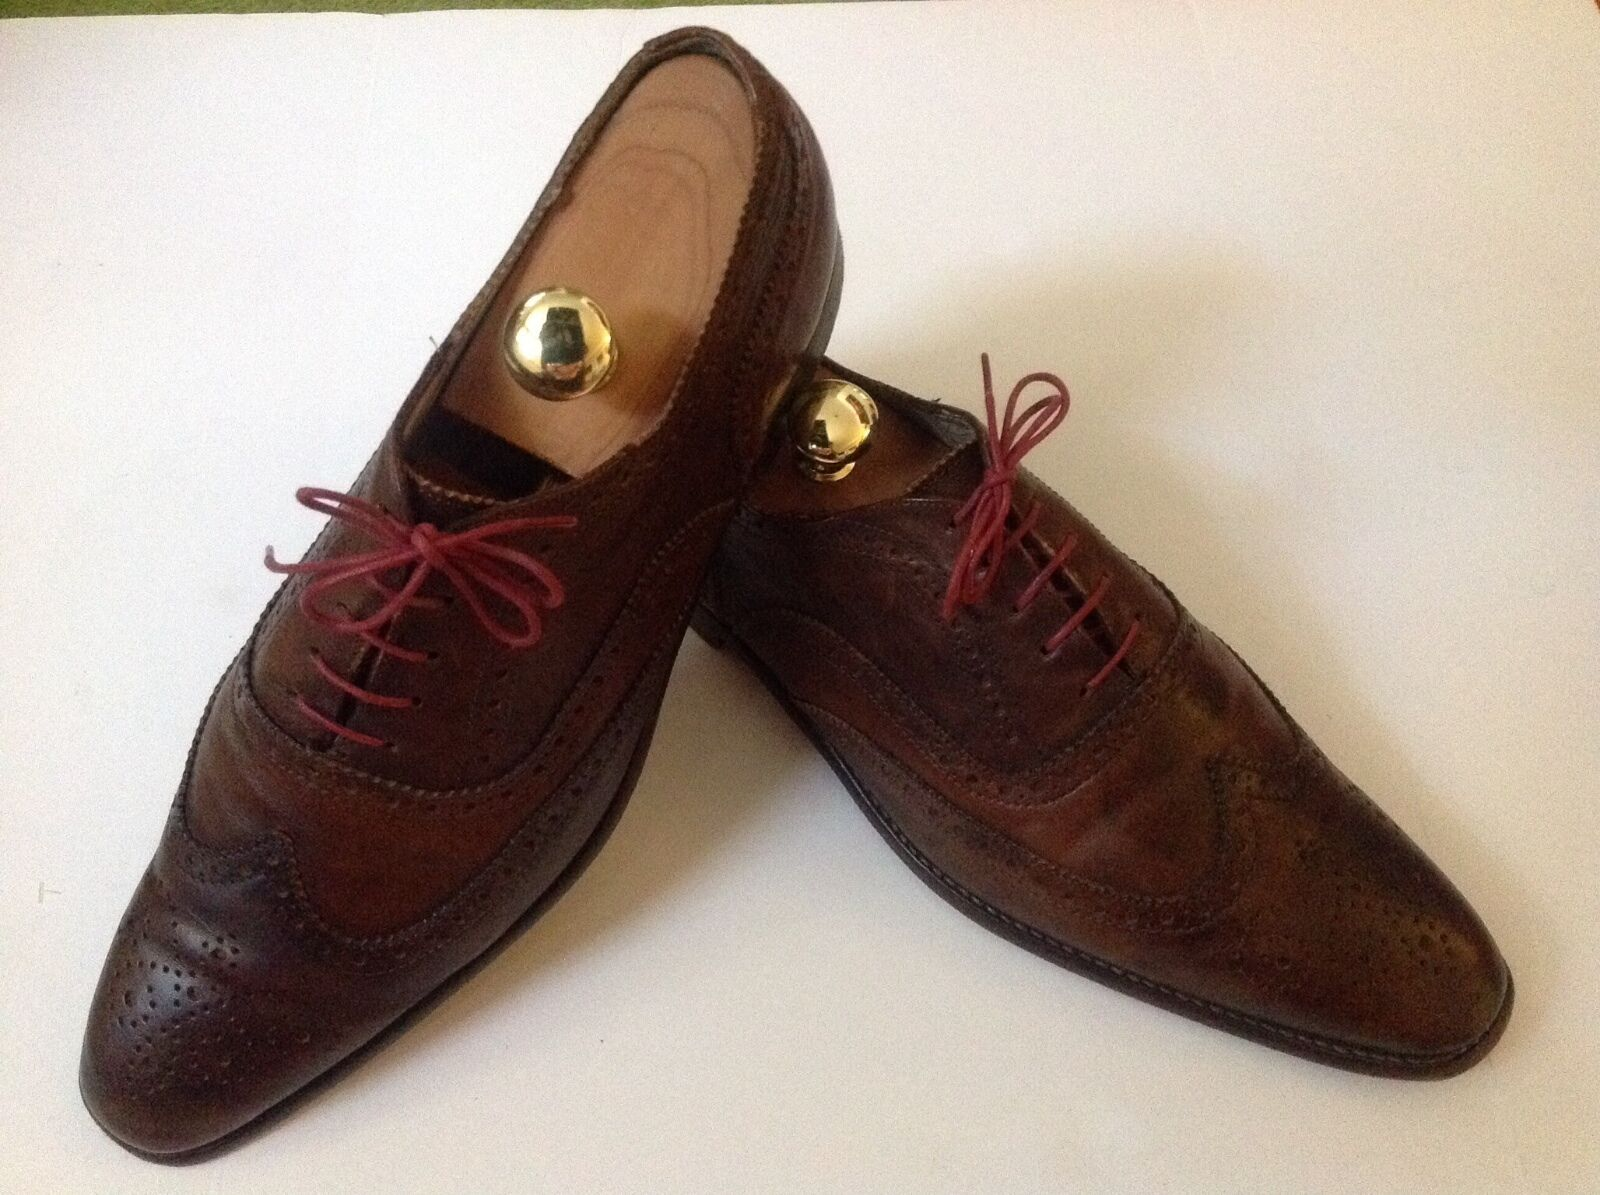 Paul Smith - PAIR of Marronee HANDCRAFTED ANTIQUED WINGTIPS Dimensione 10UK 44 EURO